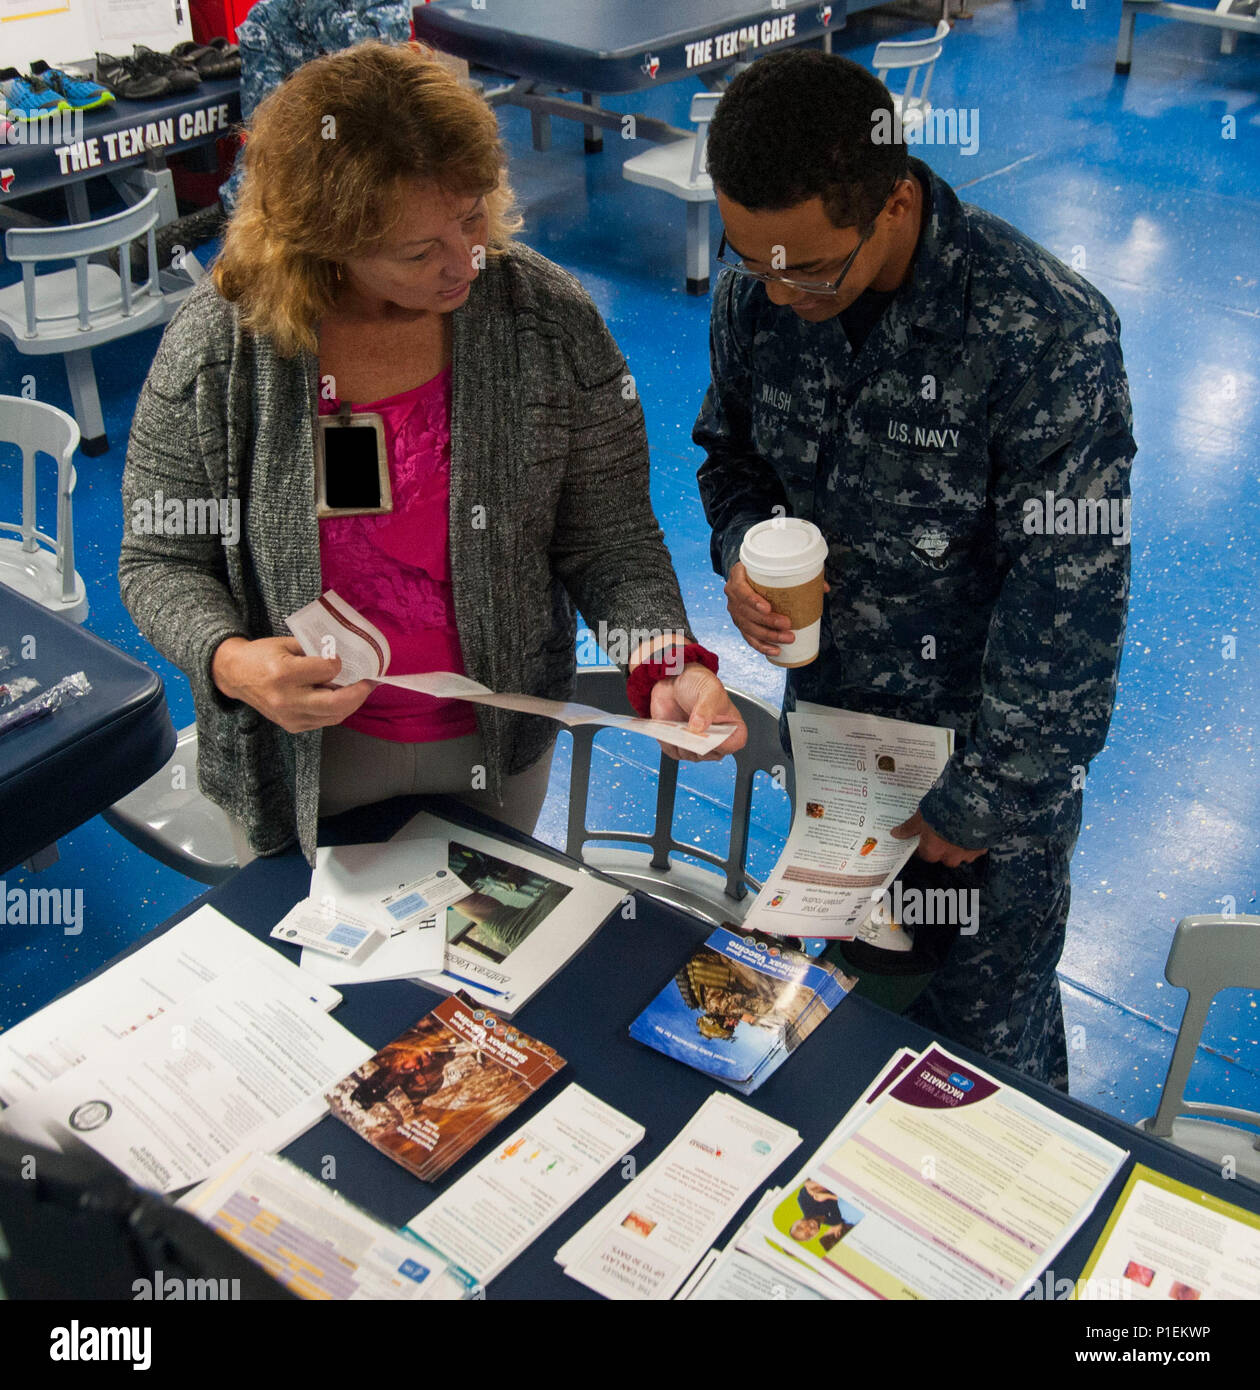 161019-N-OX430-038 NORFOLK (Oct. 19, 2016) Ann Morse, left, a family nurse practitioner at Naval Medical Center Portsmouth (NMCP), provides Seaman James Walsh immunization health care information and research tools during a health promotion and wellness fair held aboard the aircraft carrier USS George H.W. Bush (CVN 77). The health fair provides innovative and evidence-based health promotion and wellness advice to the crew of GHWB. (U.S. Navy photo by Petty Officer 3rd Class Daniel Gaither/Released) - Stock Image